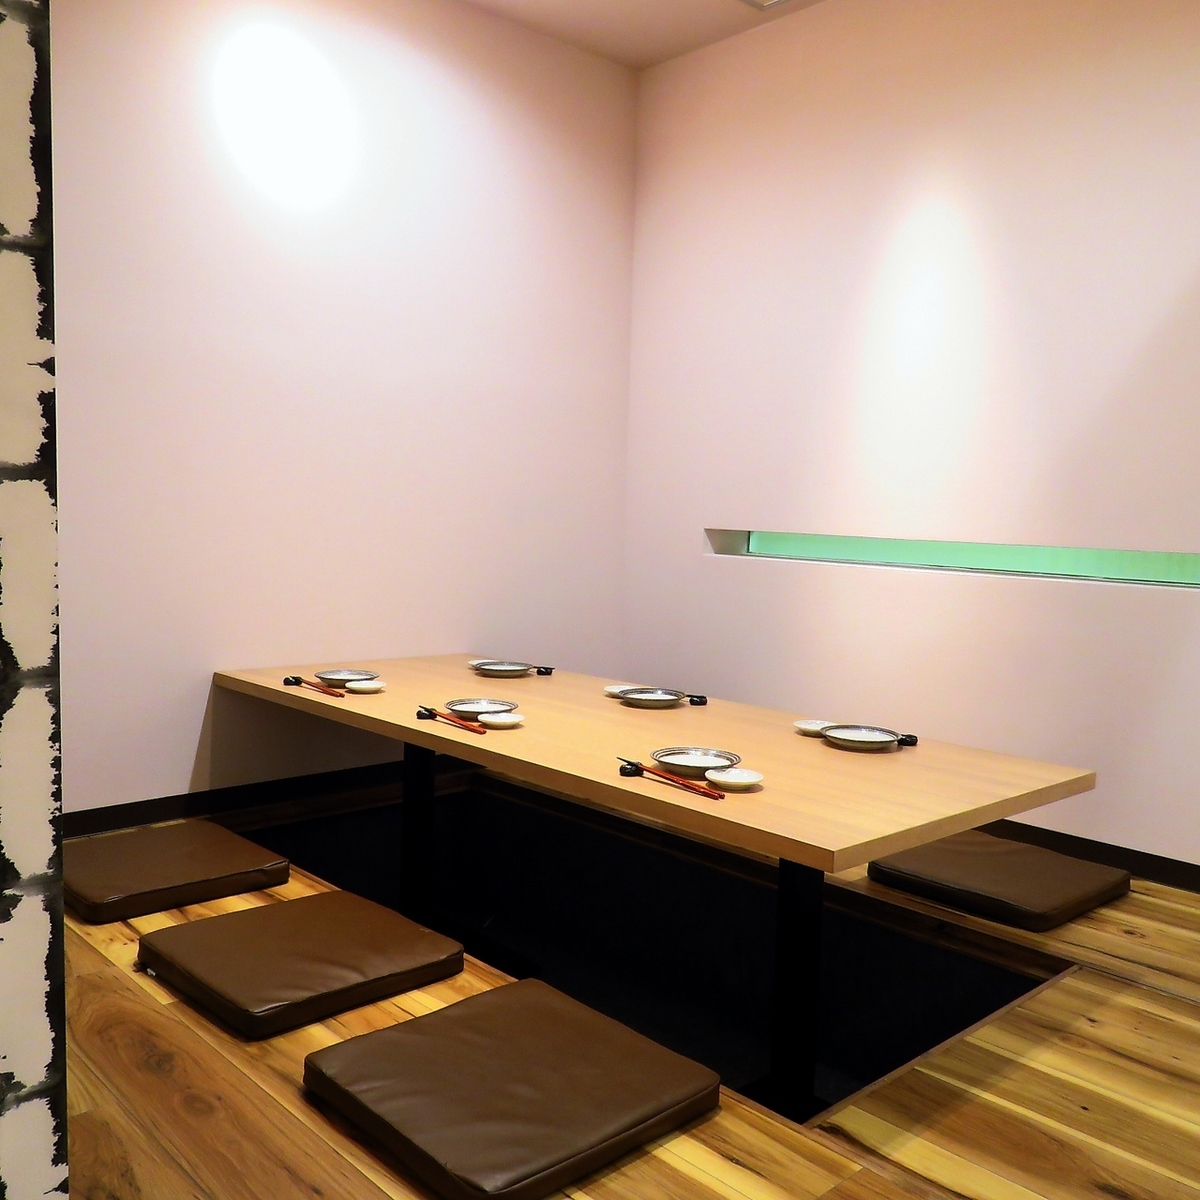 【Maximum of 12 persons in a single room!】 4 people table × 1 table, 6 people table × 1 table, packed up to 12 people Private room seats are semi-private room style separated by partitions.Recommended for private banquets and banquets inside friends!